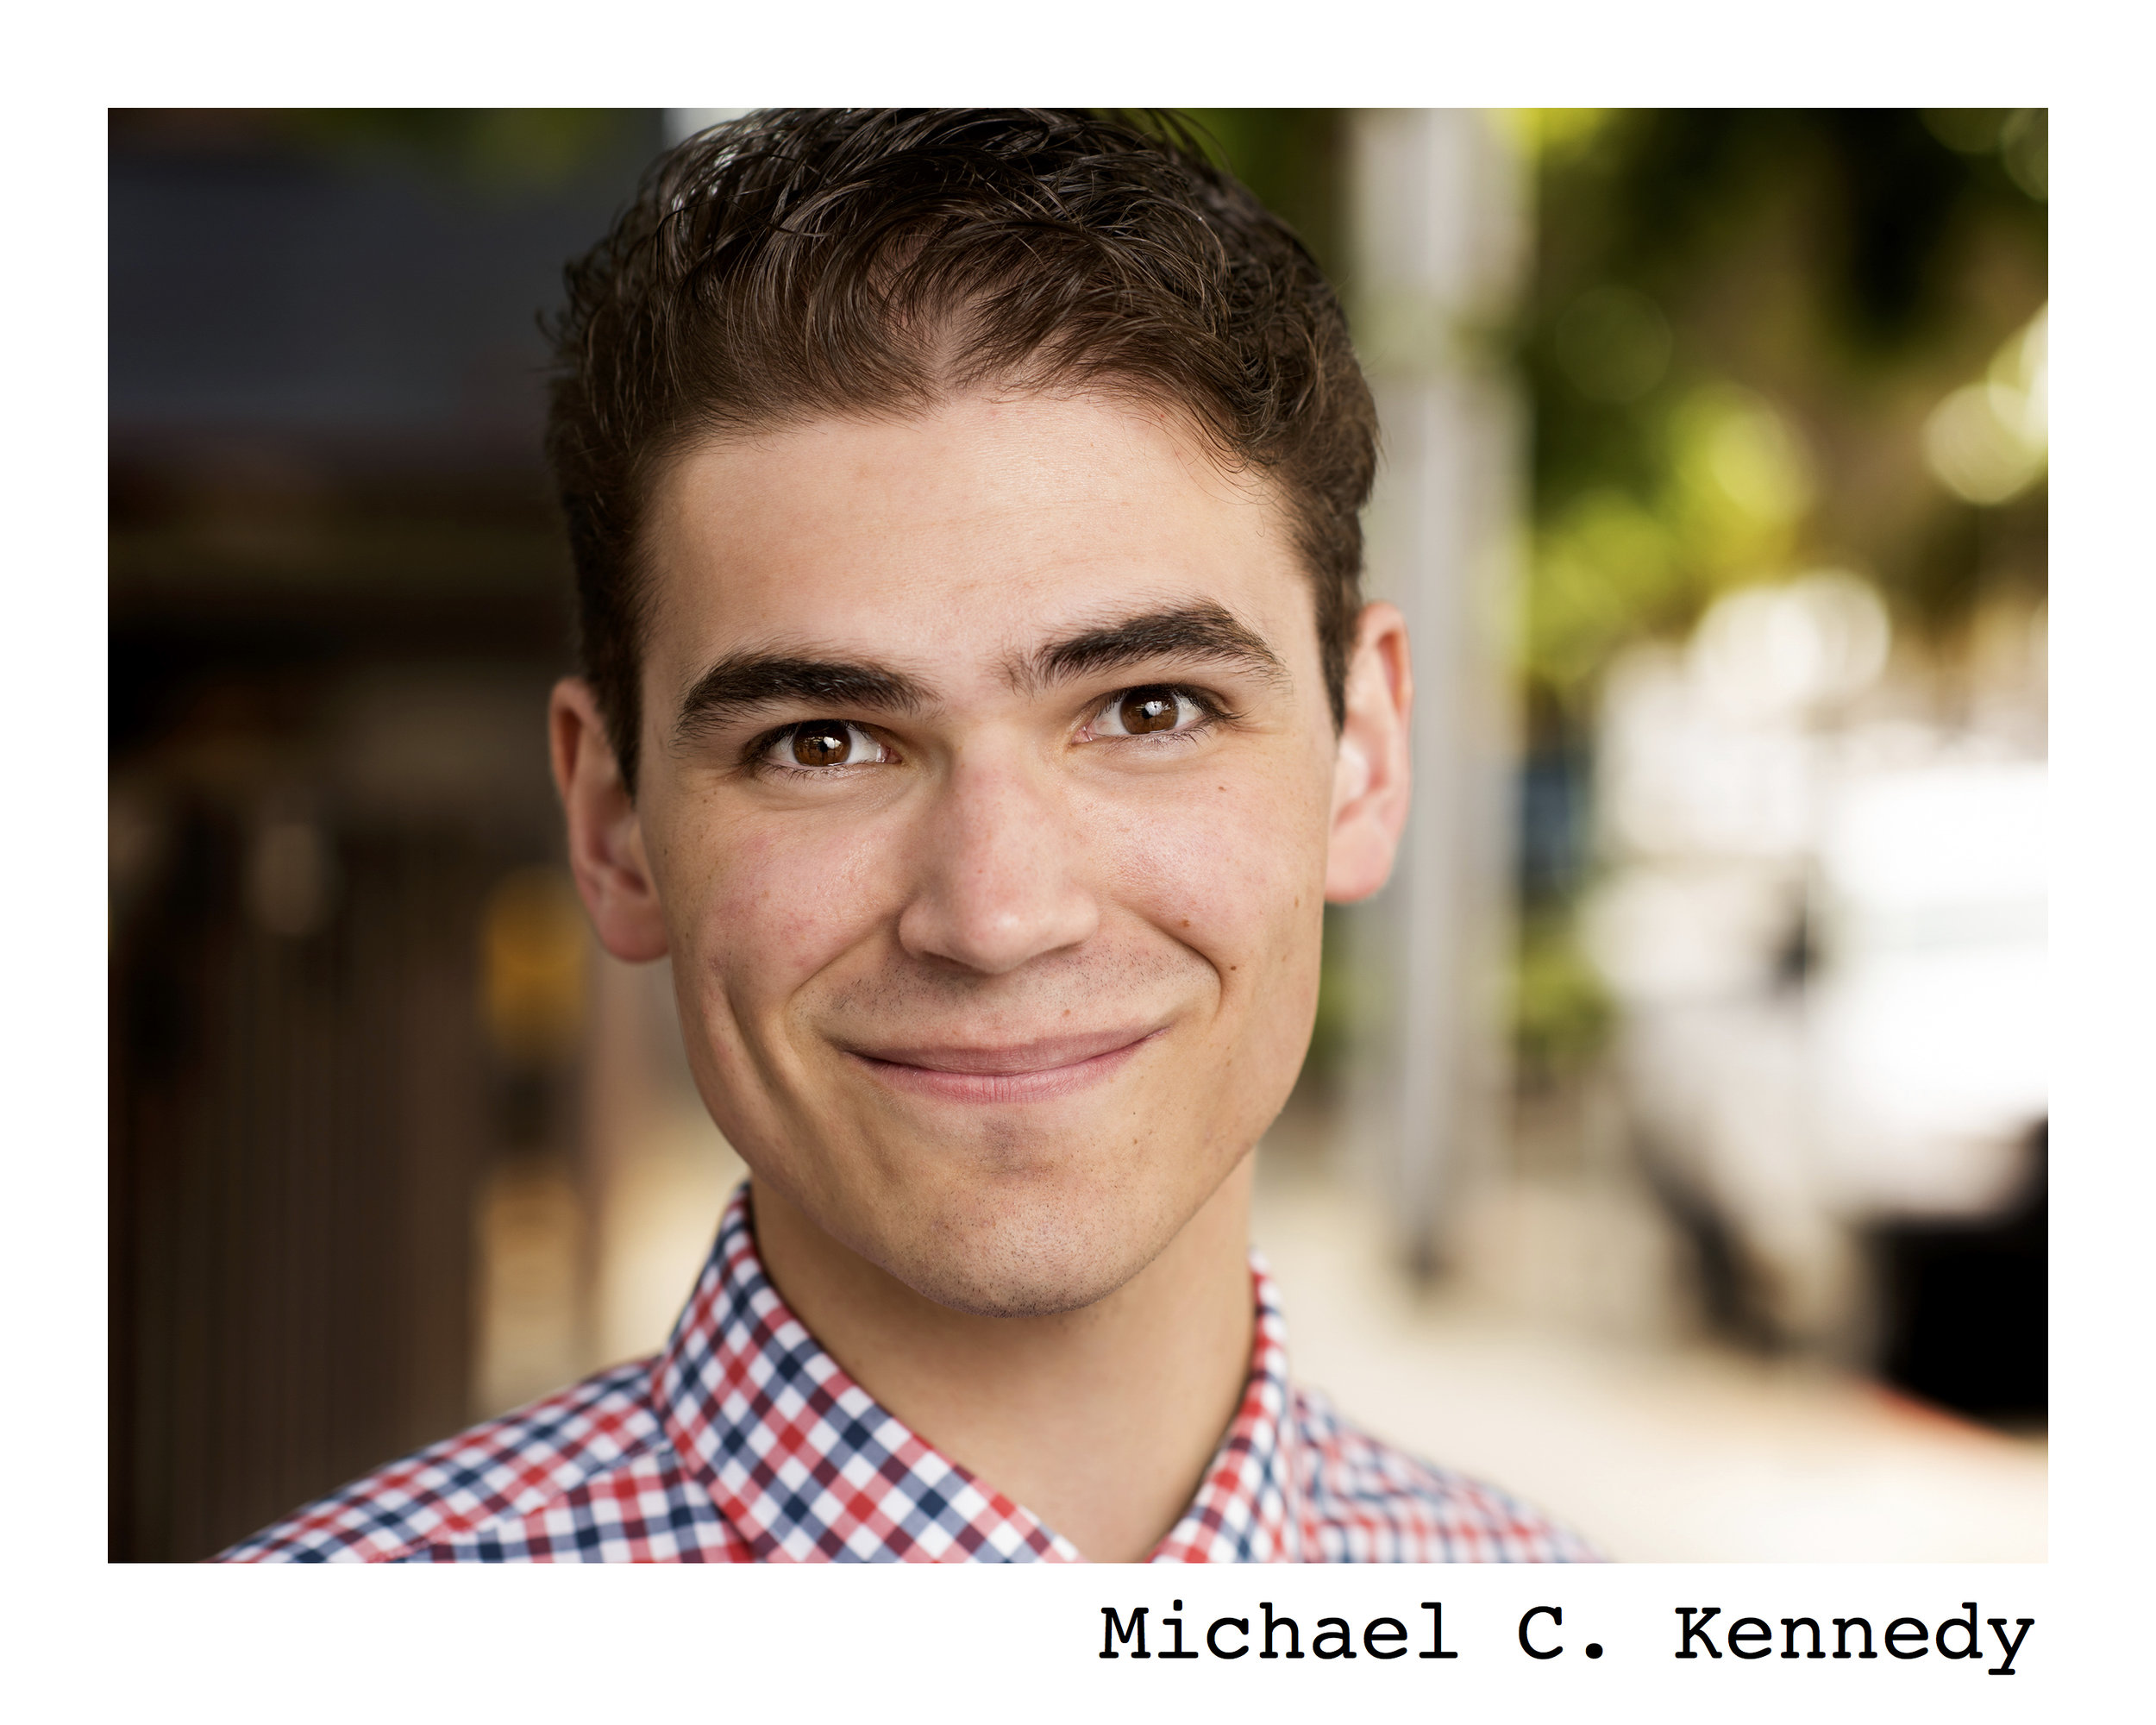 Michael C. Kennedy Headshot.jpg